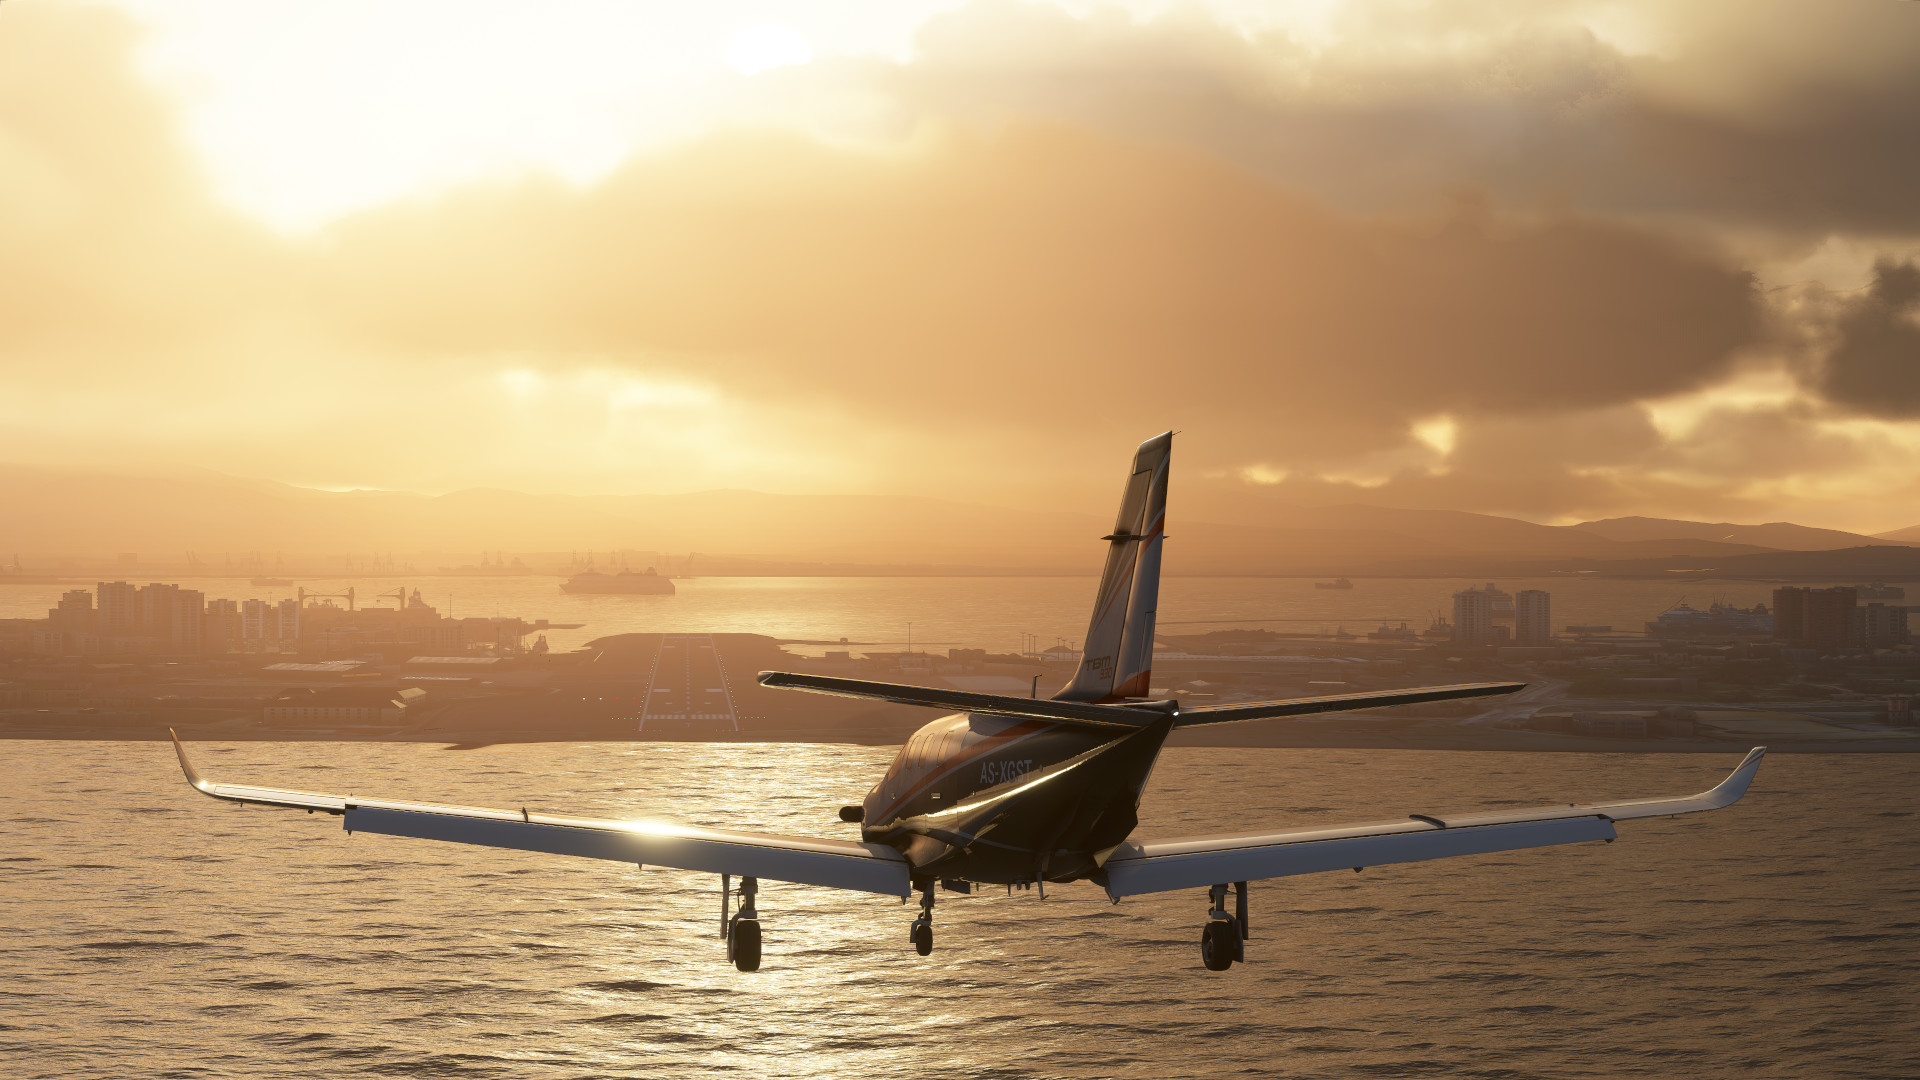 How to Land a Plane in Microsoft Flight Simulator 2020